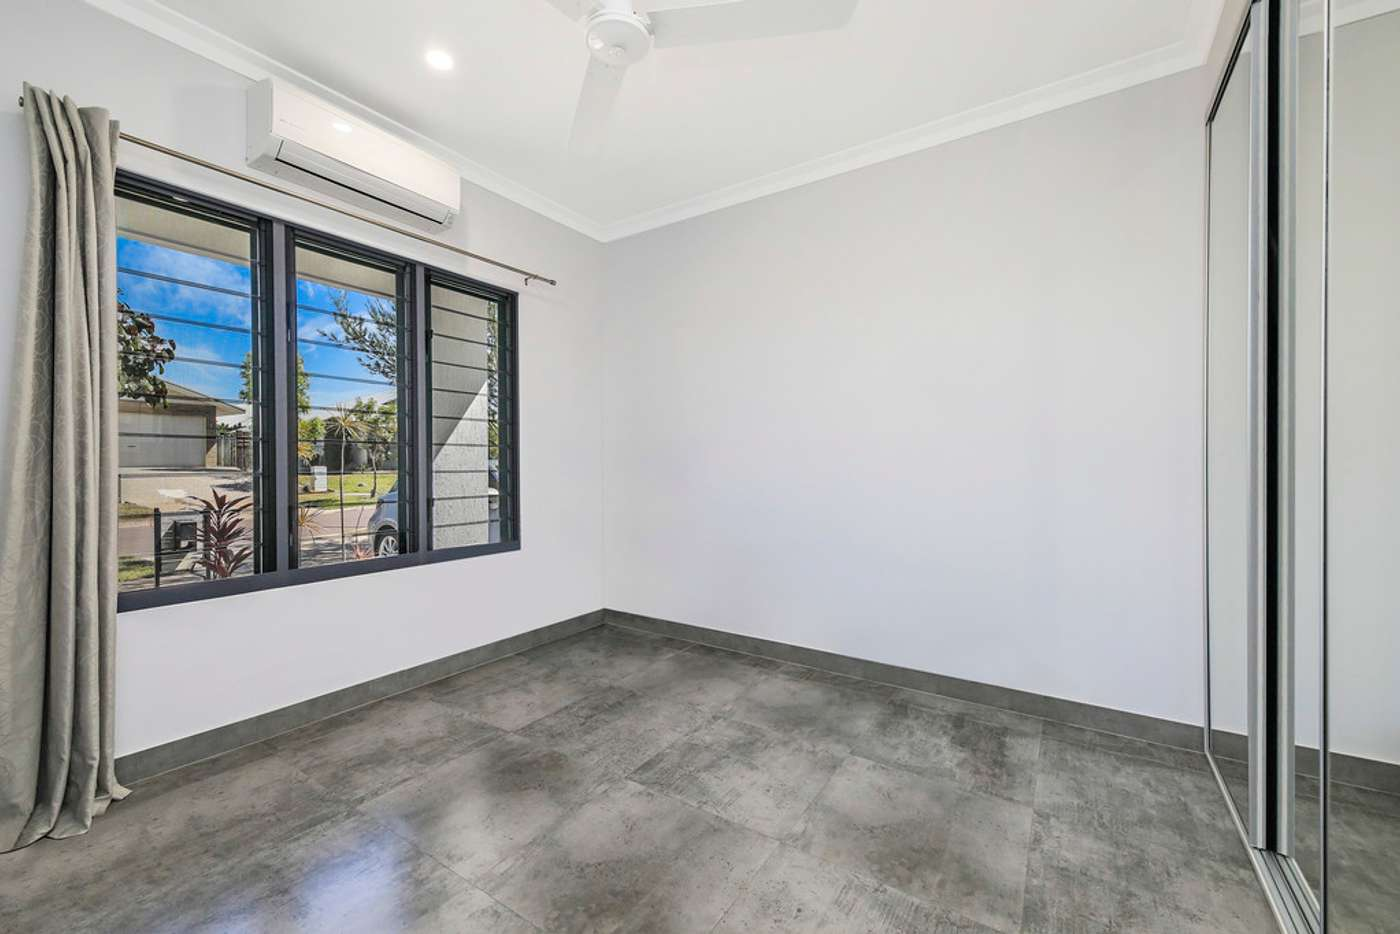 Fifth view of Homely unit listing, 1/22 Dorling Street, Muirhead NT 810